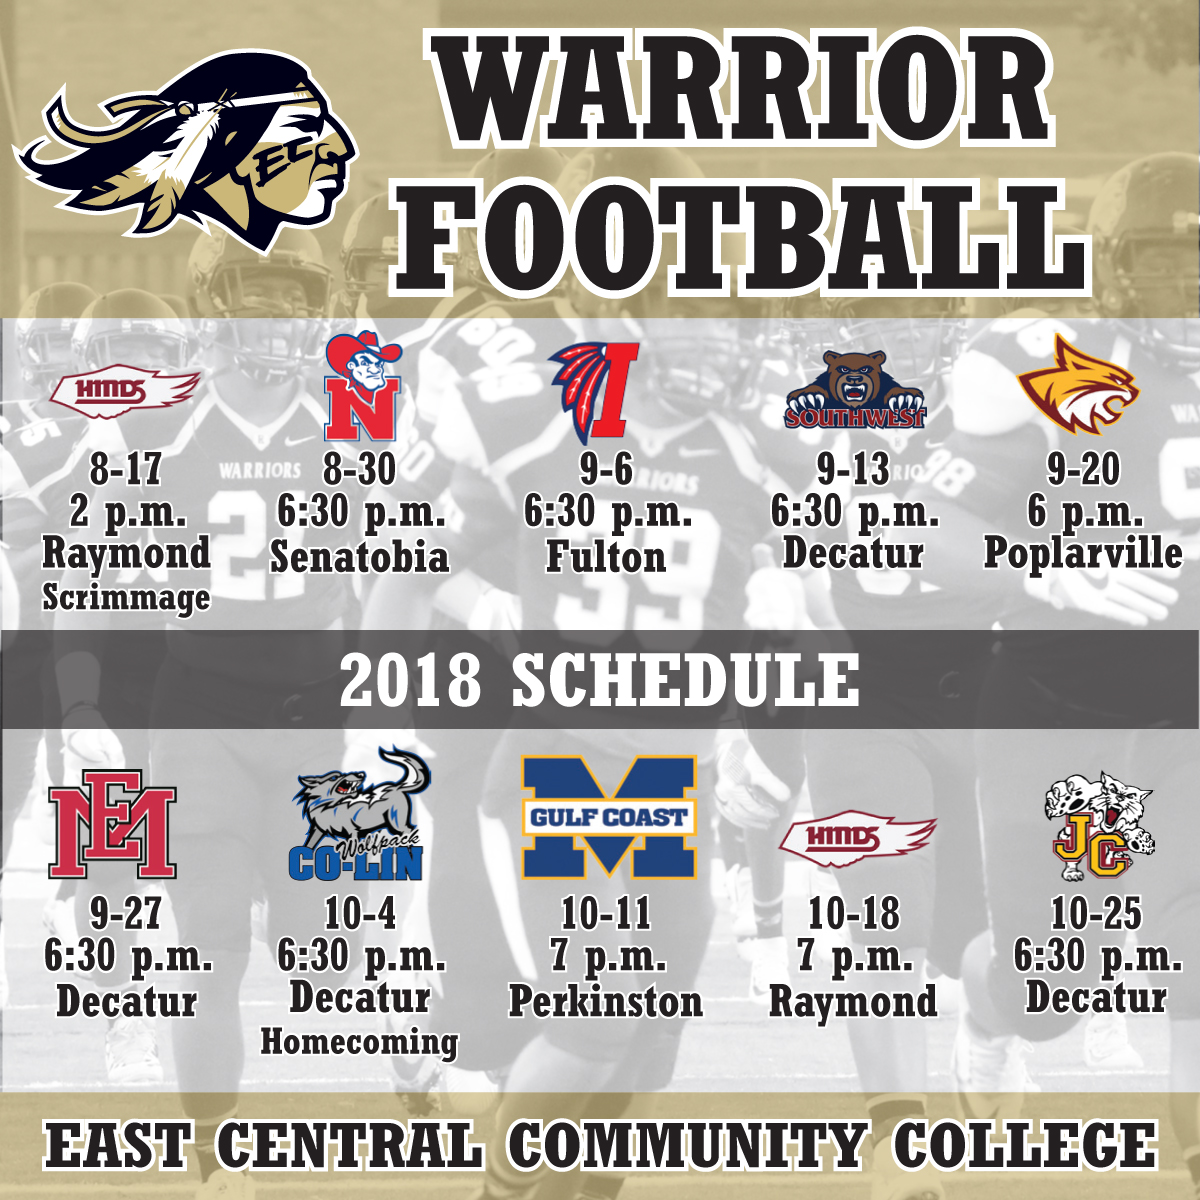 eccc announces 2018 football schedule | east central community college